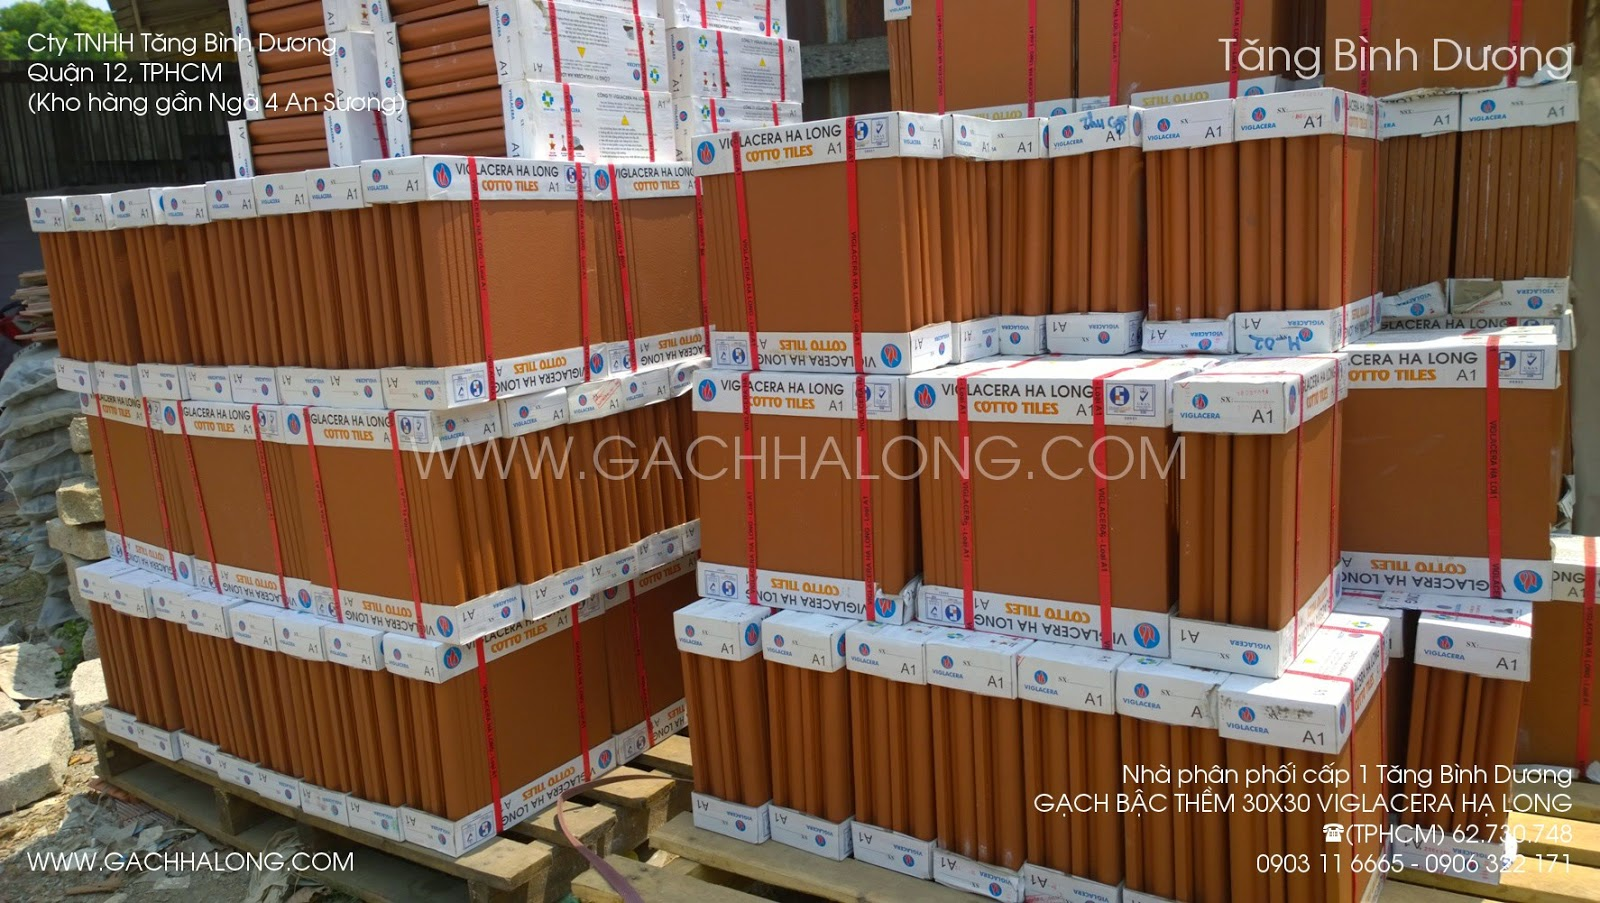 gach bac them 30x30 viglacera ha long